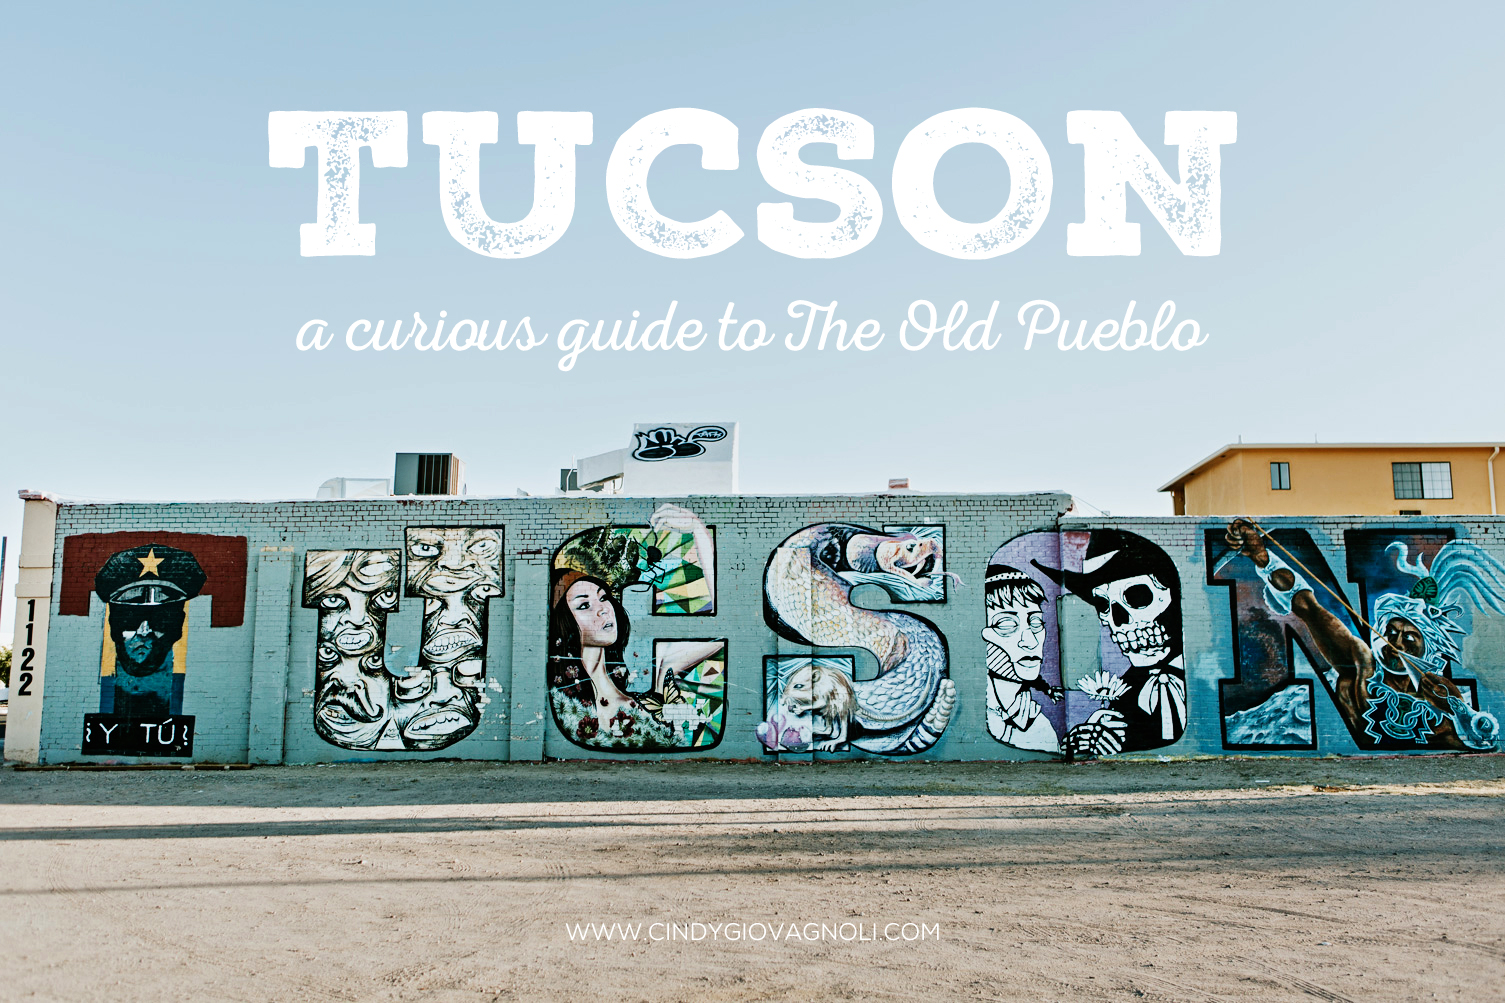 CindyGiovagnoli_Tucson_Arizona_tourism_visit_travel_guide_Sonoran_desert-001.jpg